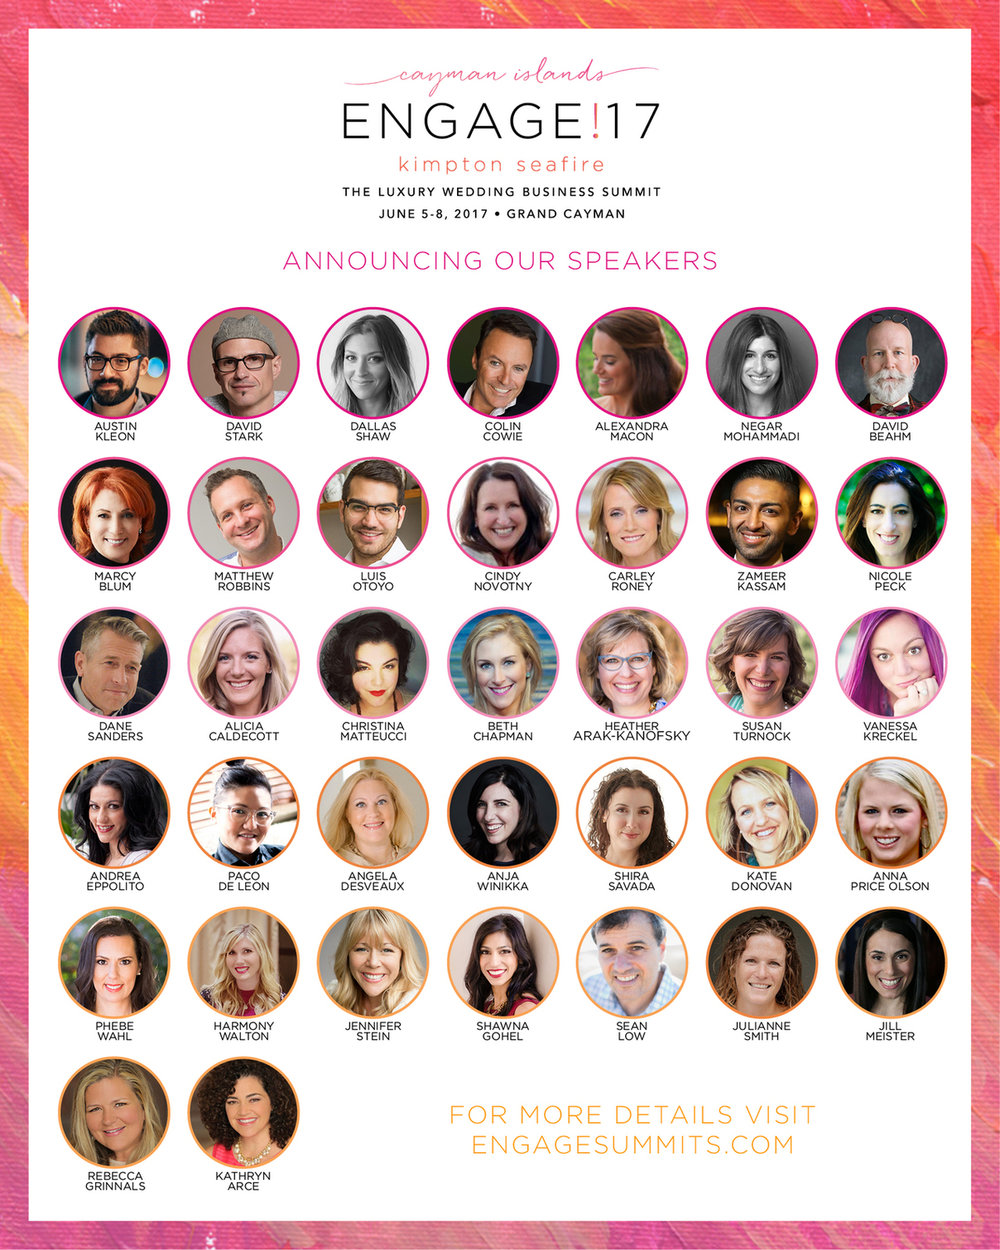 Las Vegas Wedding Planner Andrea Eppolito is speaking at Engage17 in Grand Cayman.  International speaker.